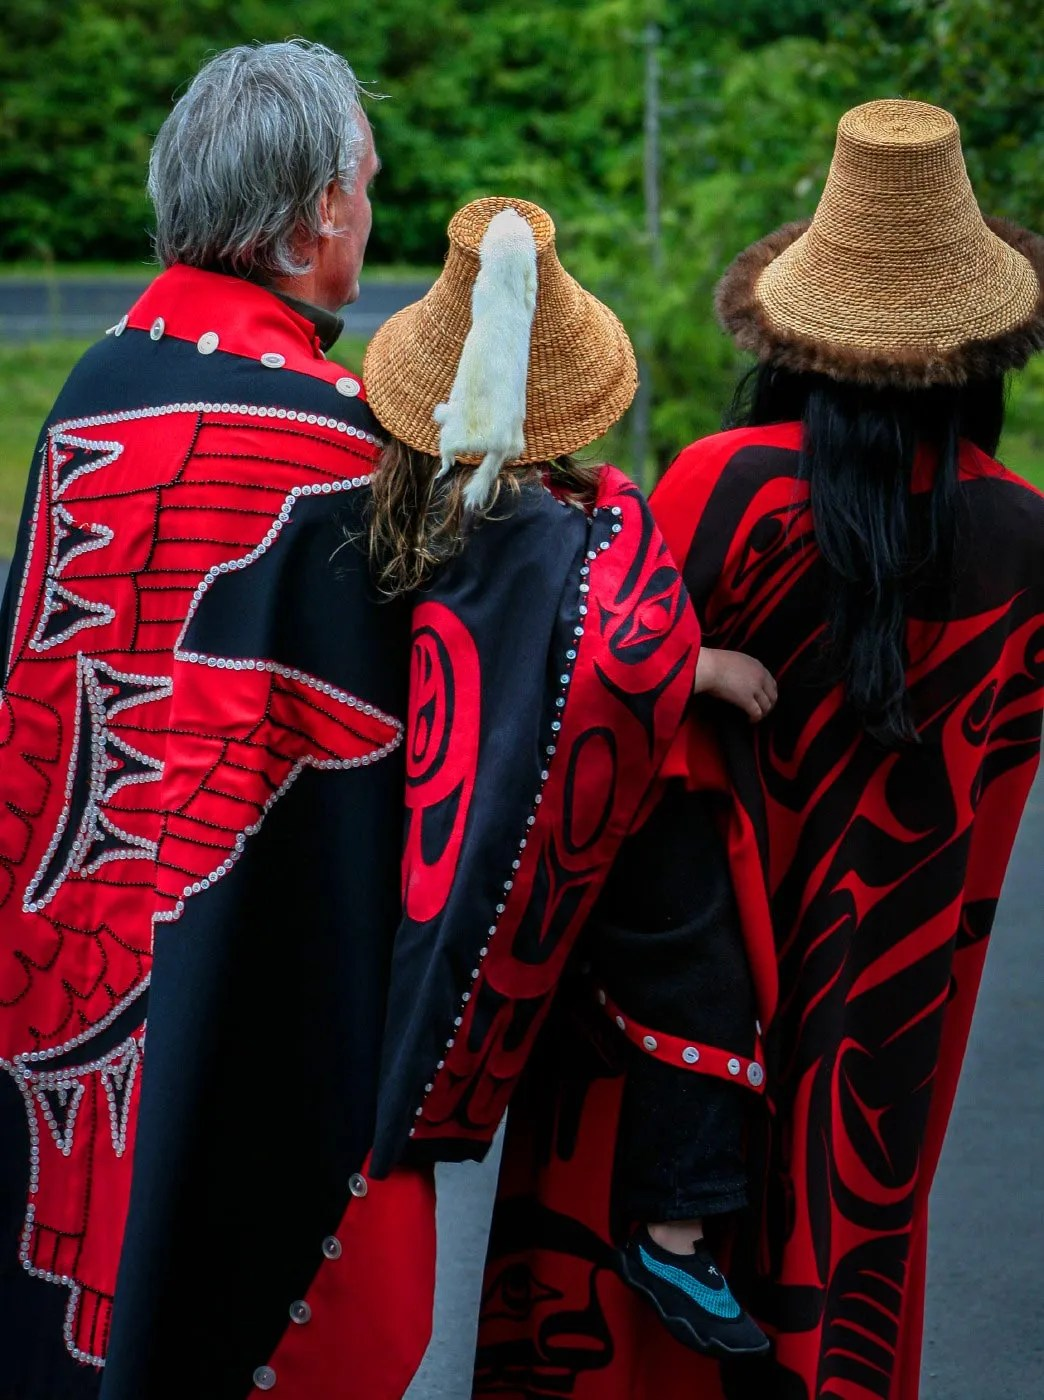 Haida Gwaii button blanket regalia